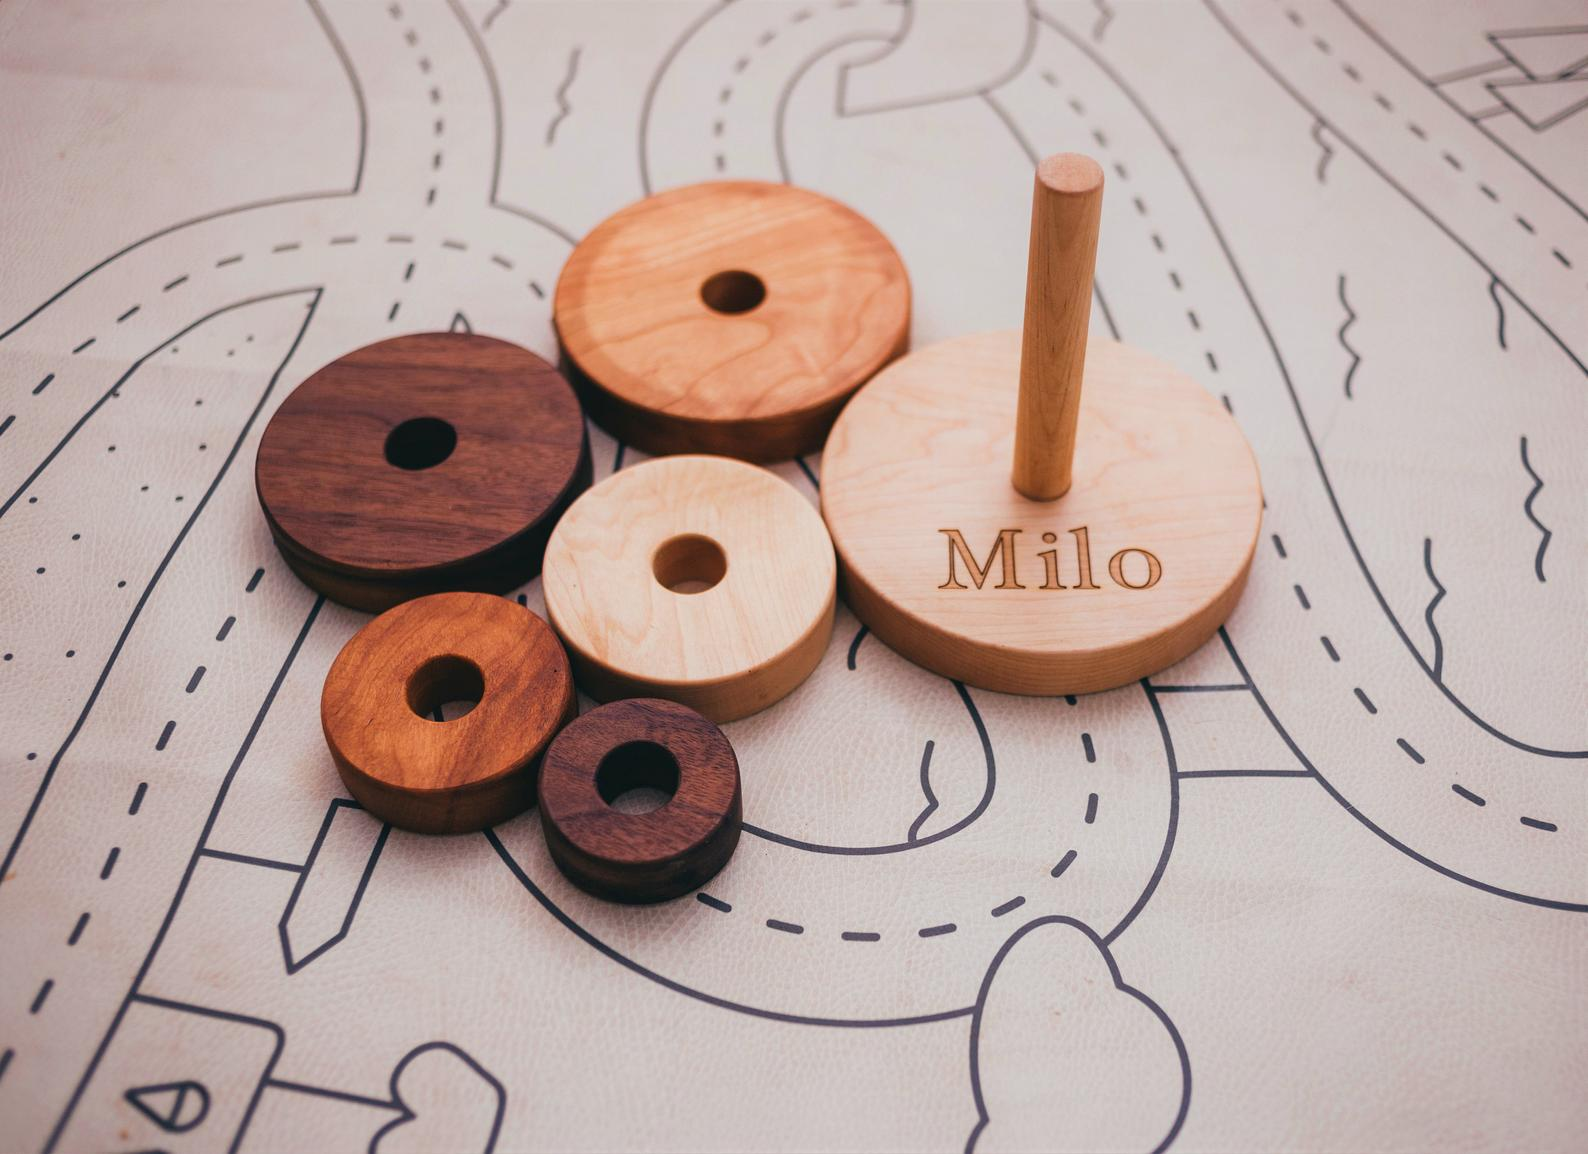 10 best baby and toddler holiday gifts from small businesses: personalized wooden ring stacker | Small Business Holiday Gift Guide 2020